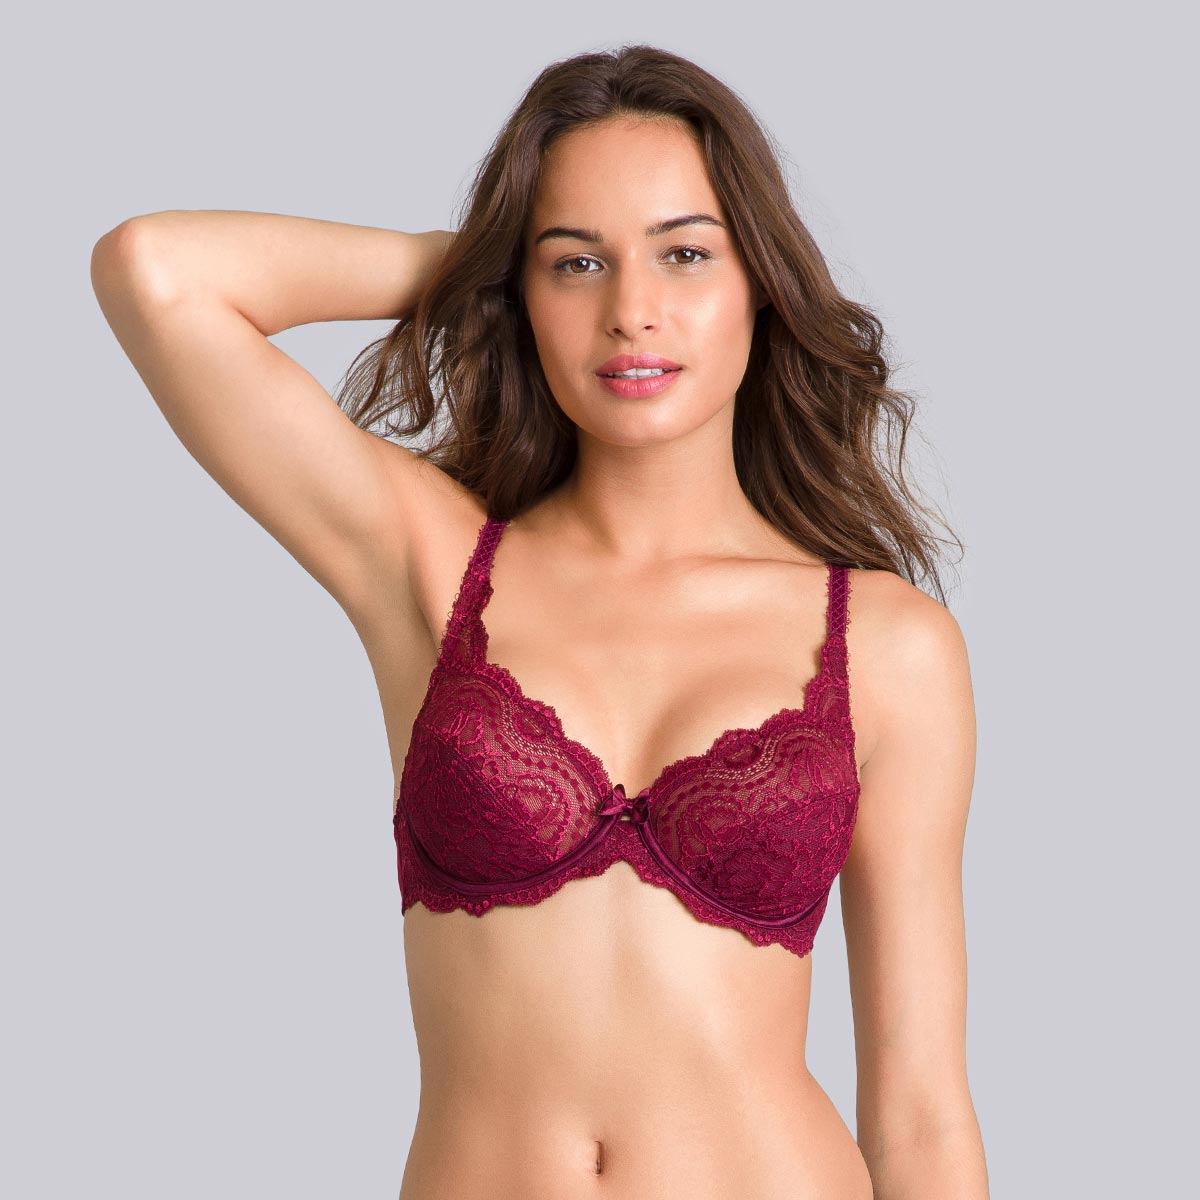 Purple burgundy full-cup bra - Flower Elegance-PLAYTEX